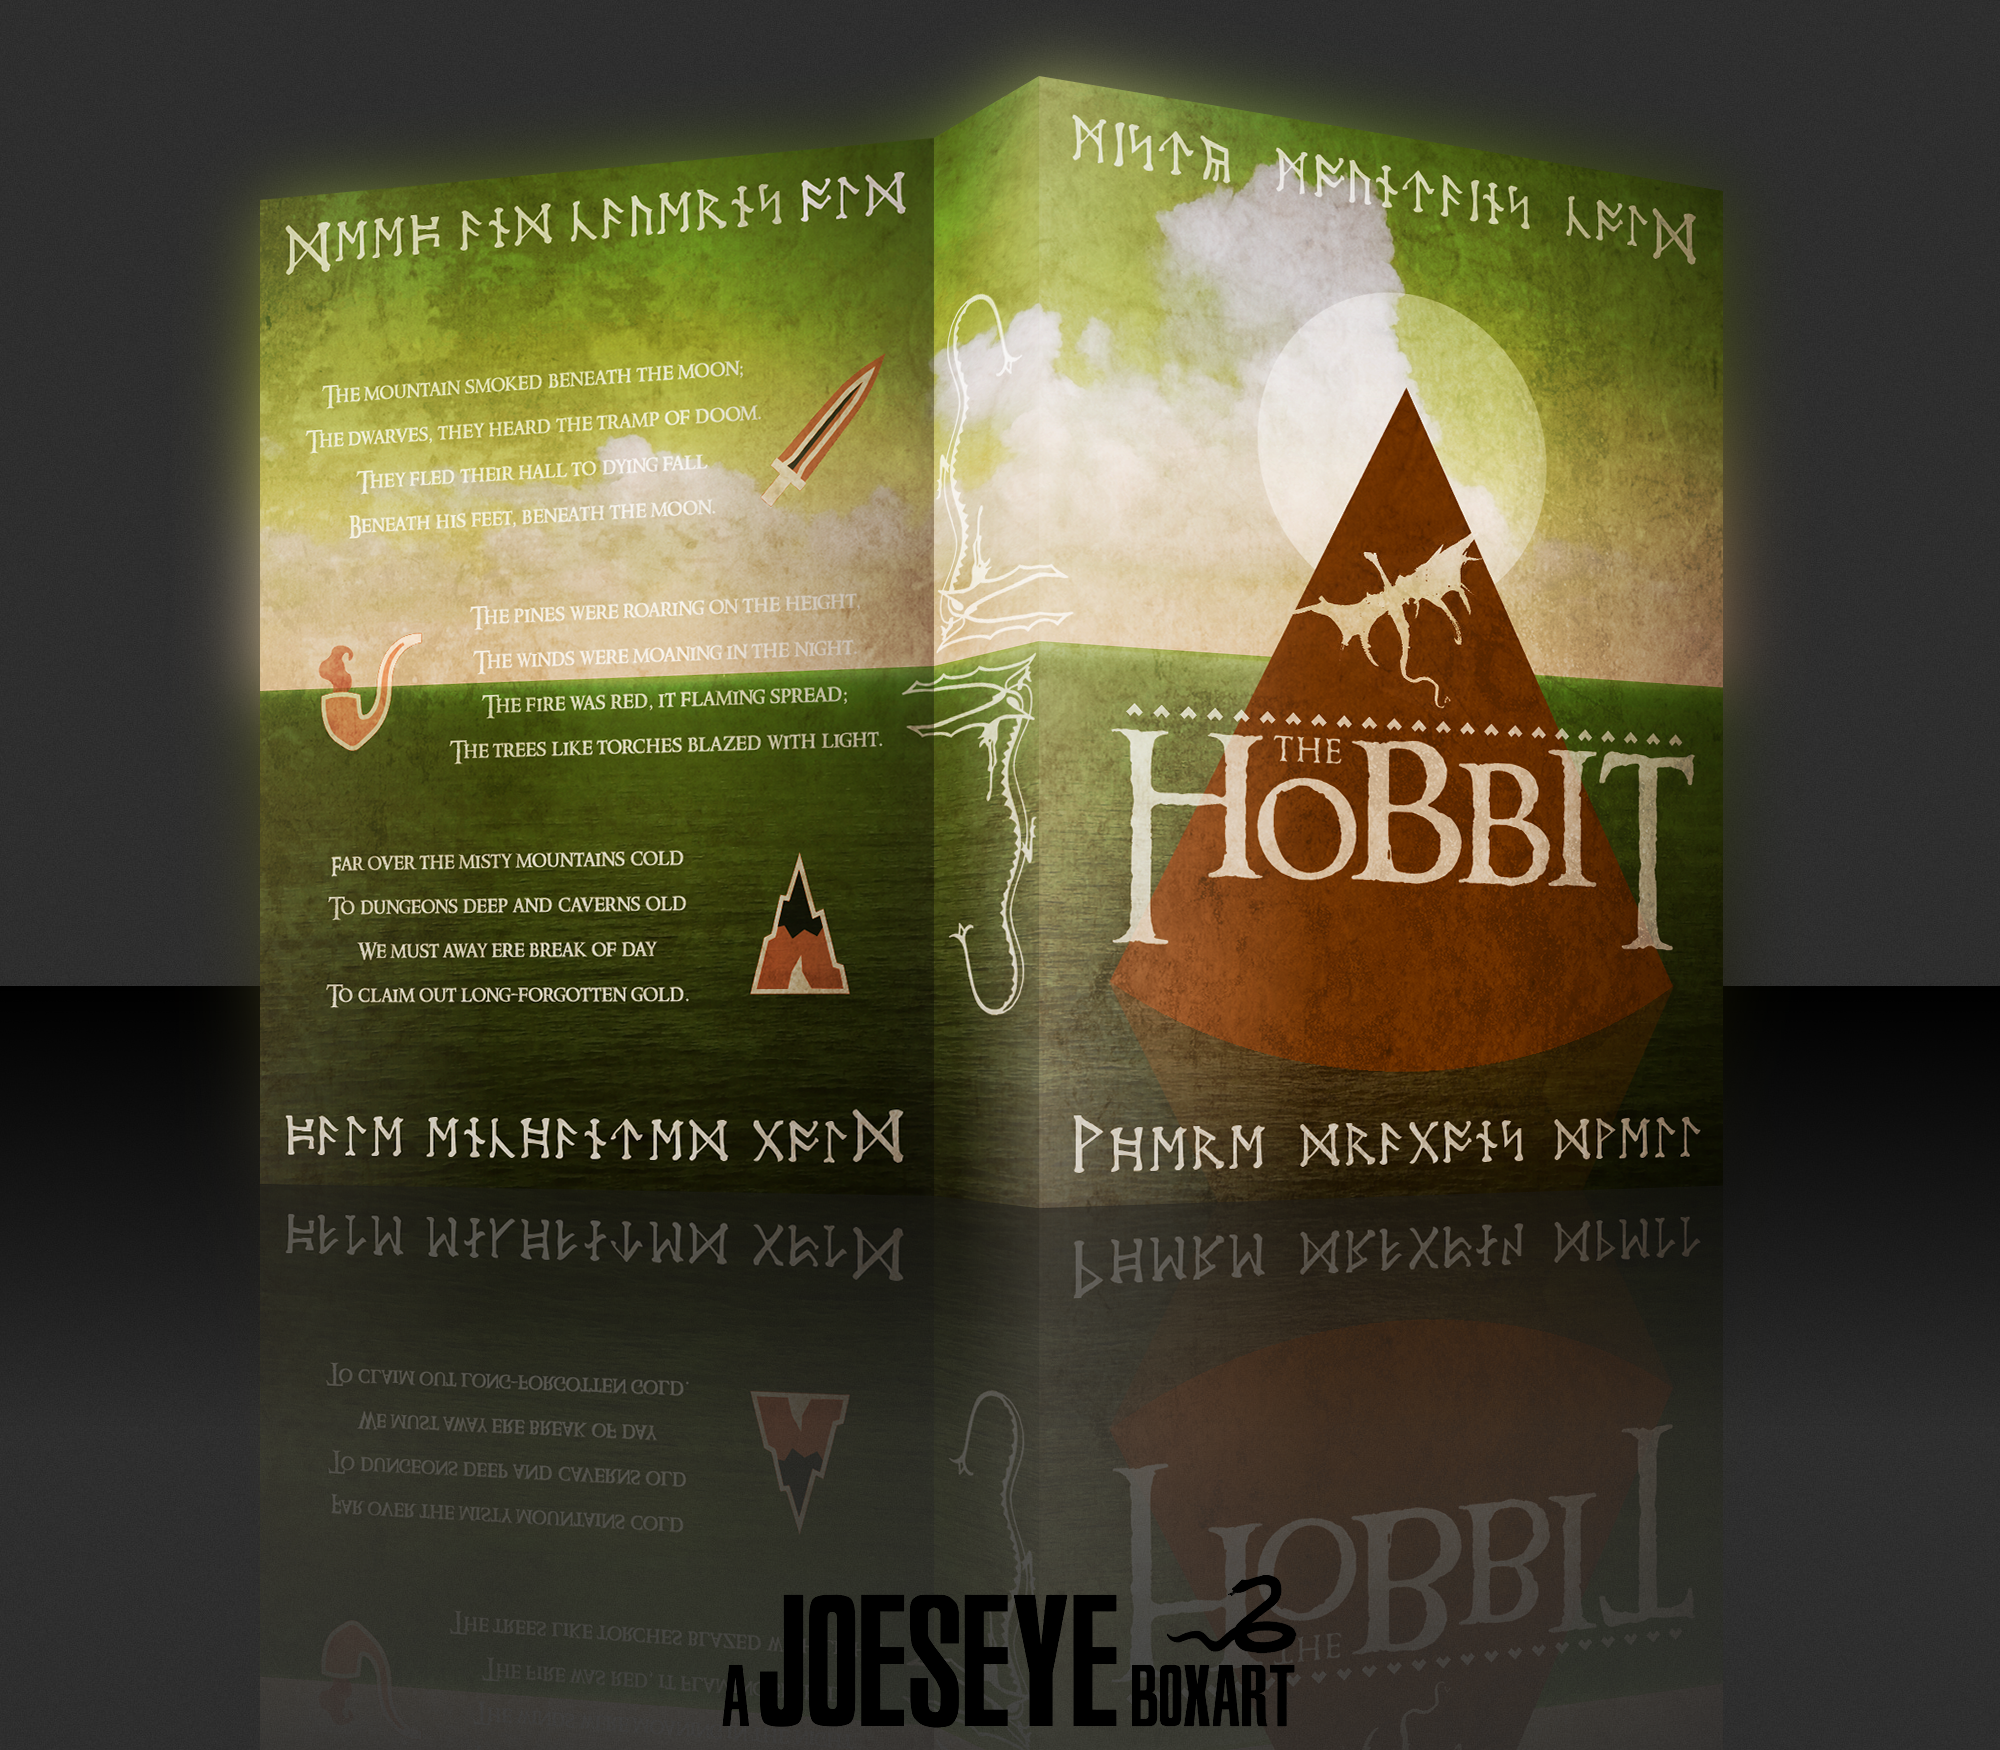 The Hobbit box cover